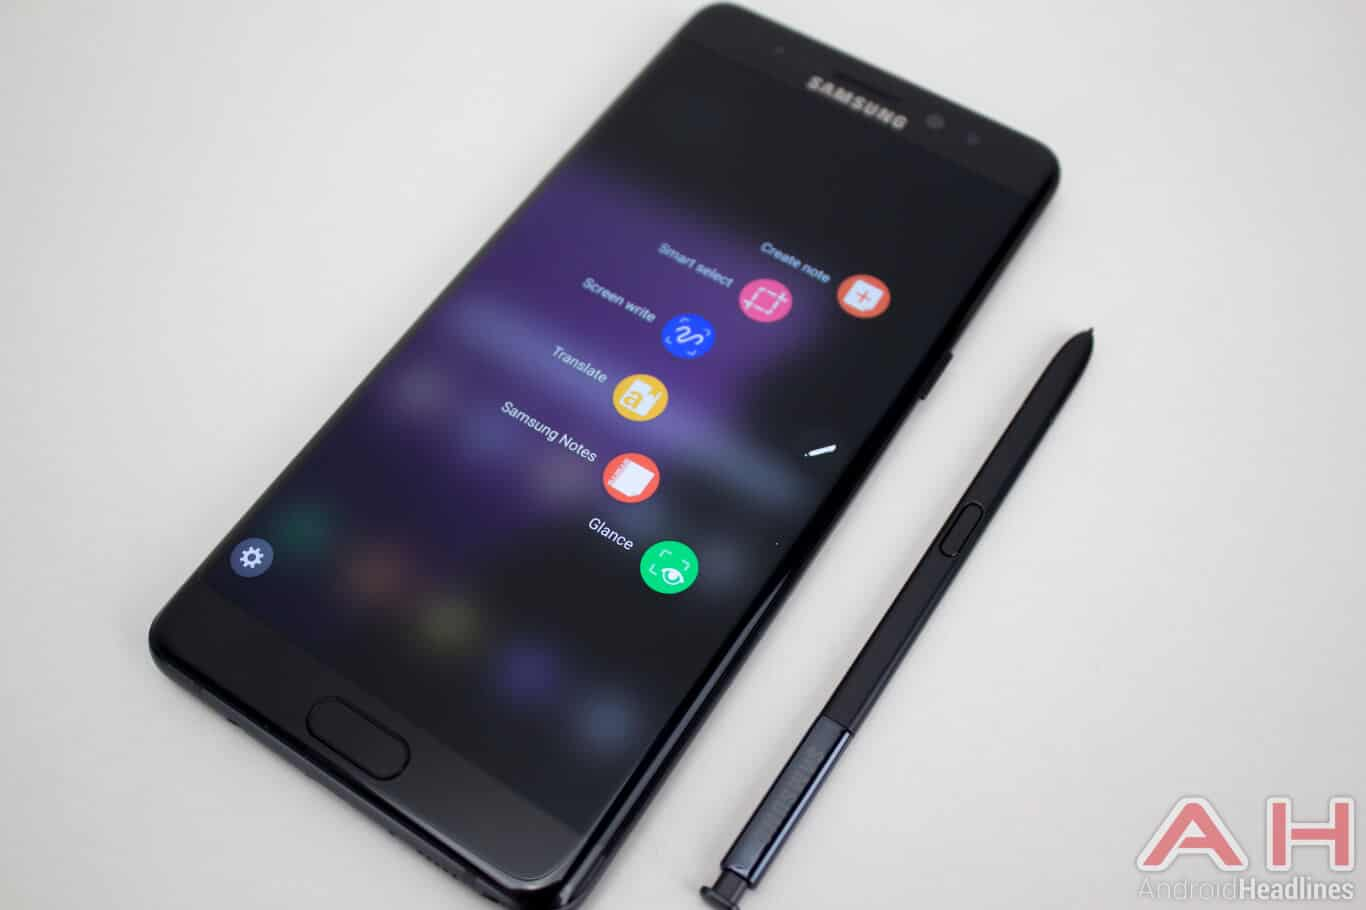 Samsung Galaxy Note 7 AH NS 01 s pen airview 02